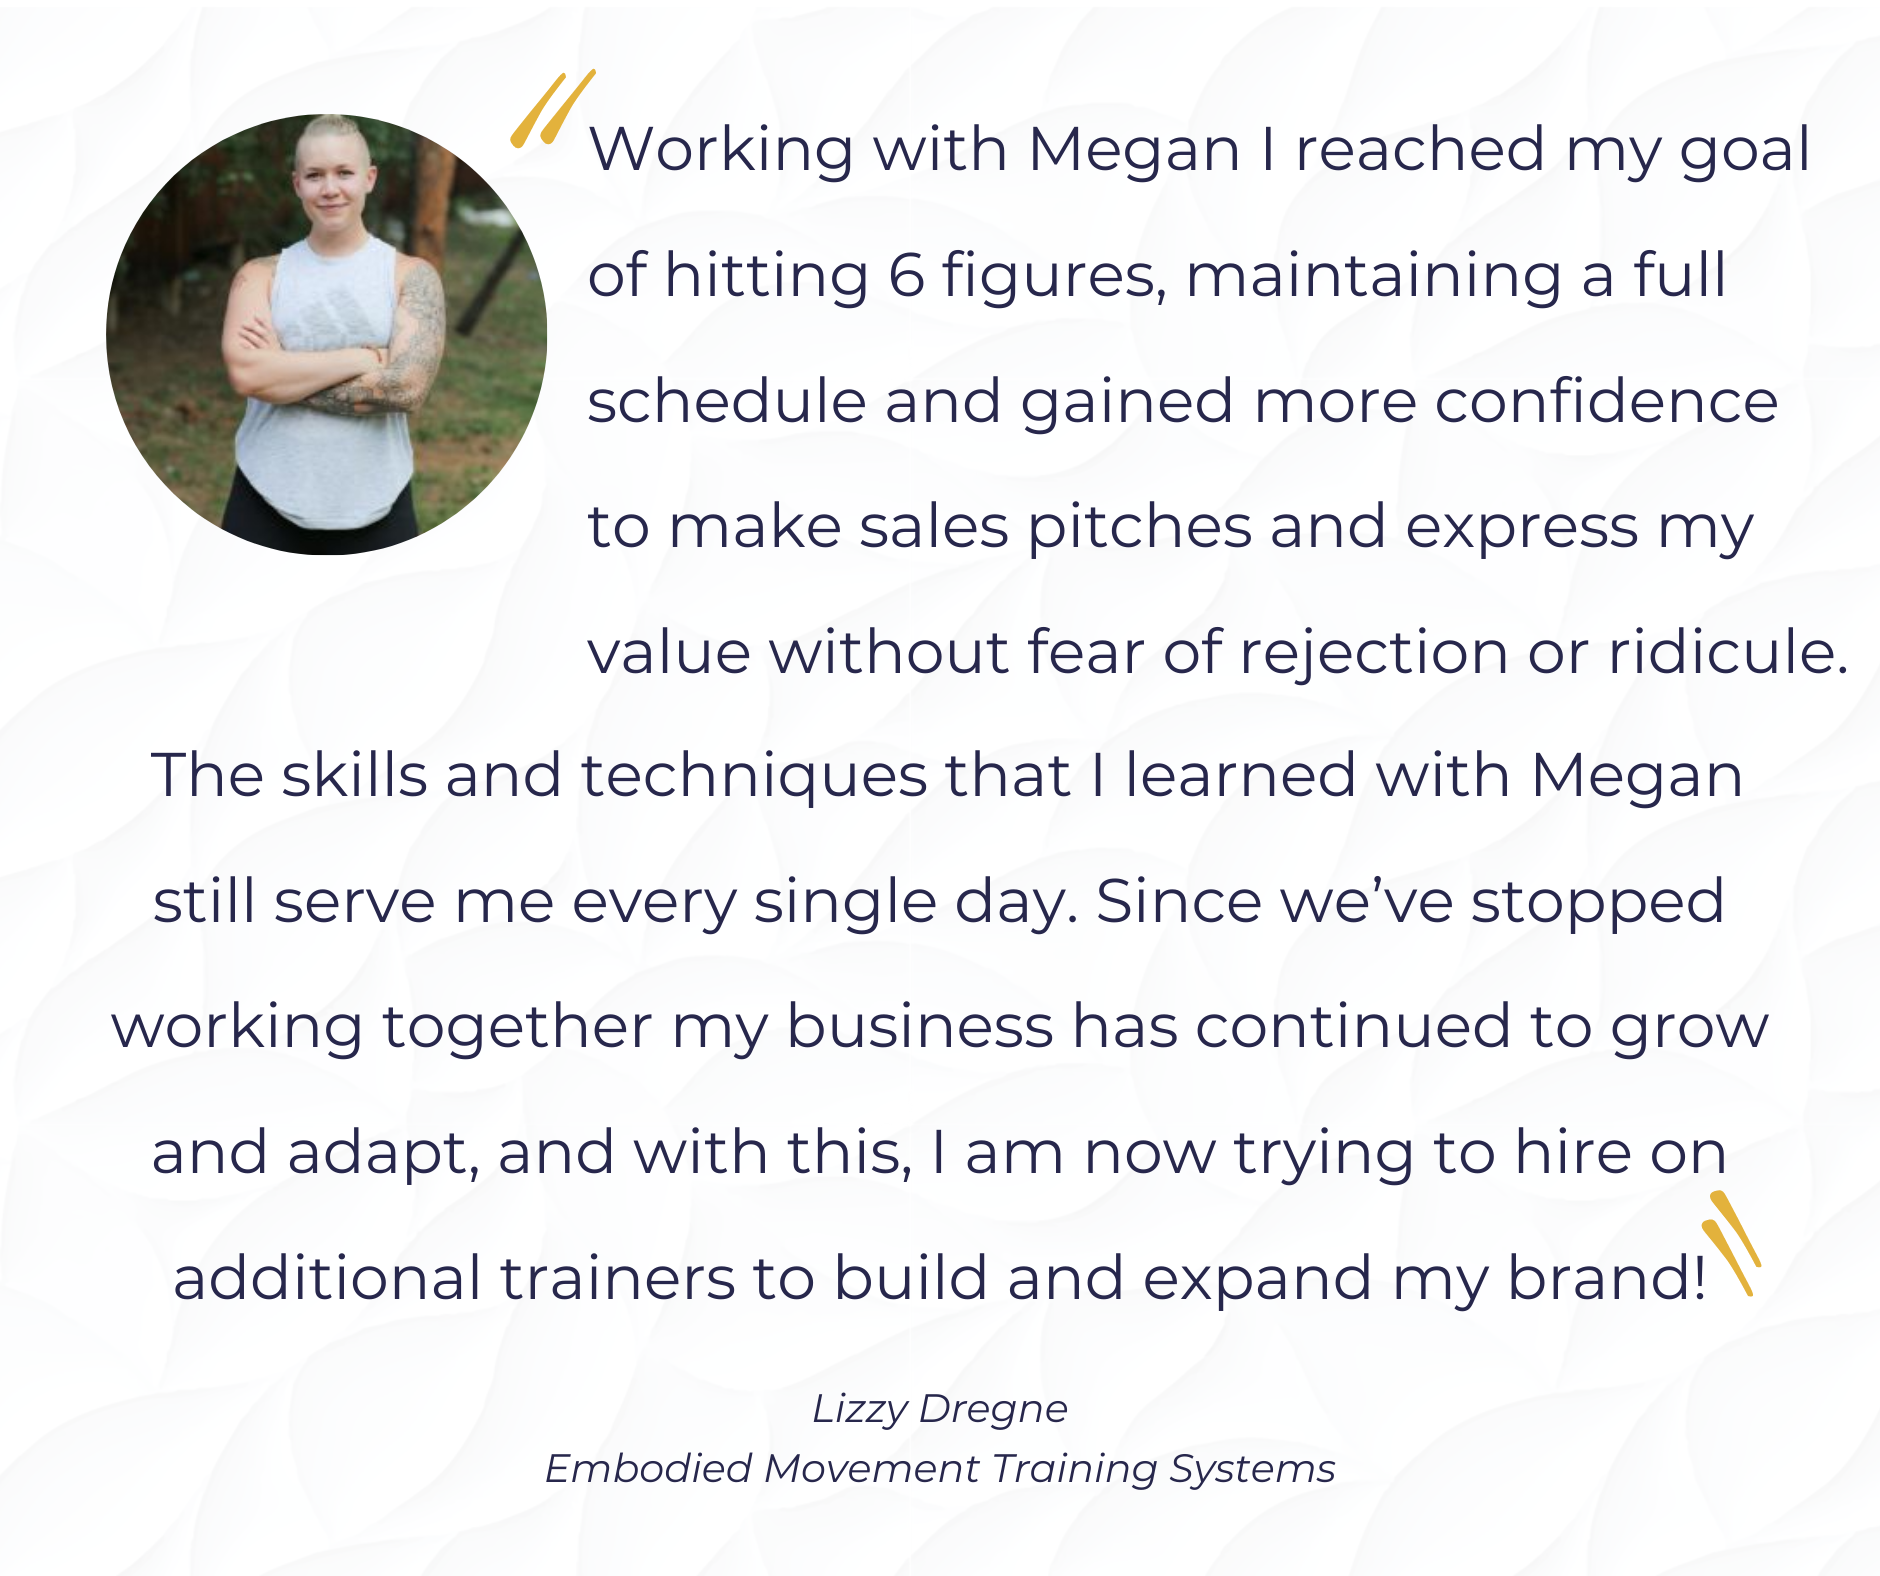 Lizzy Testimonial confidence building business coach for solopreneurs